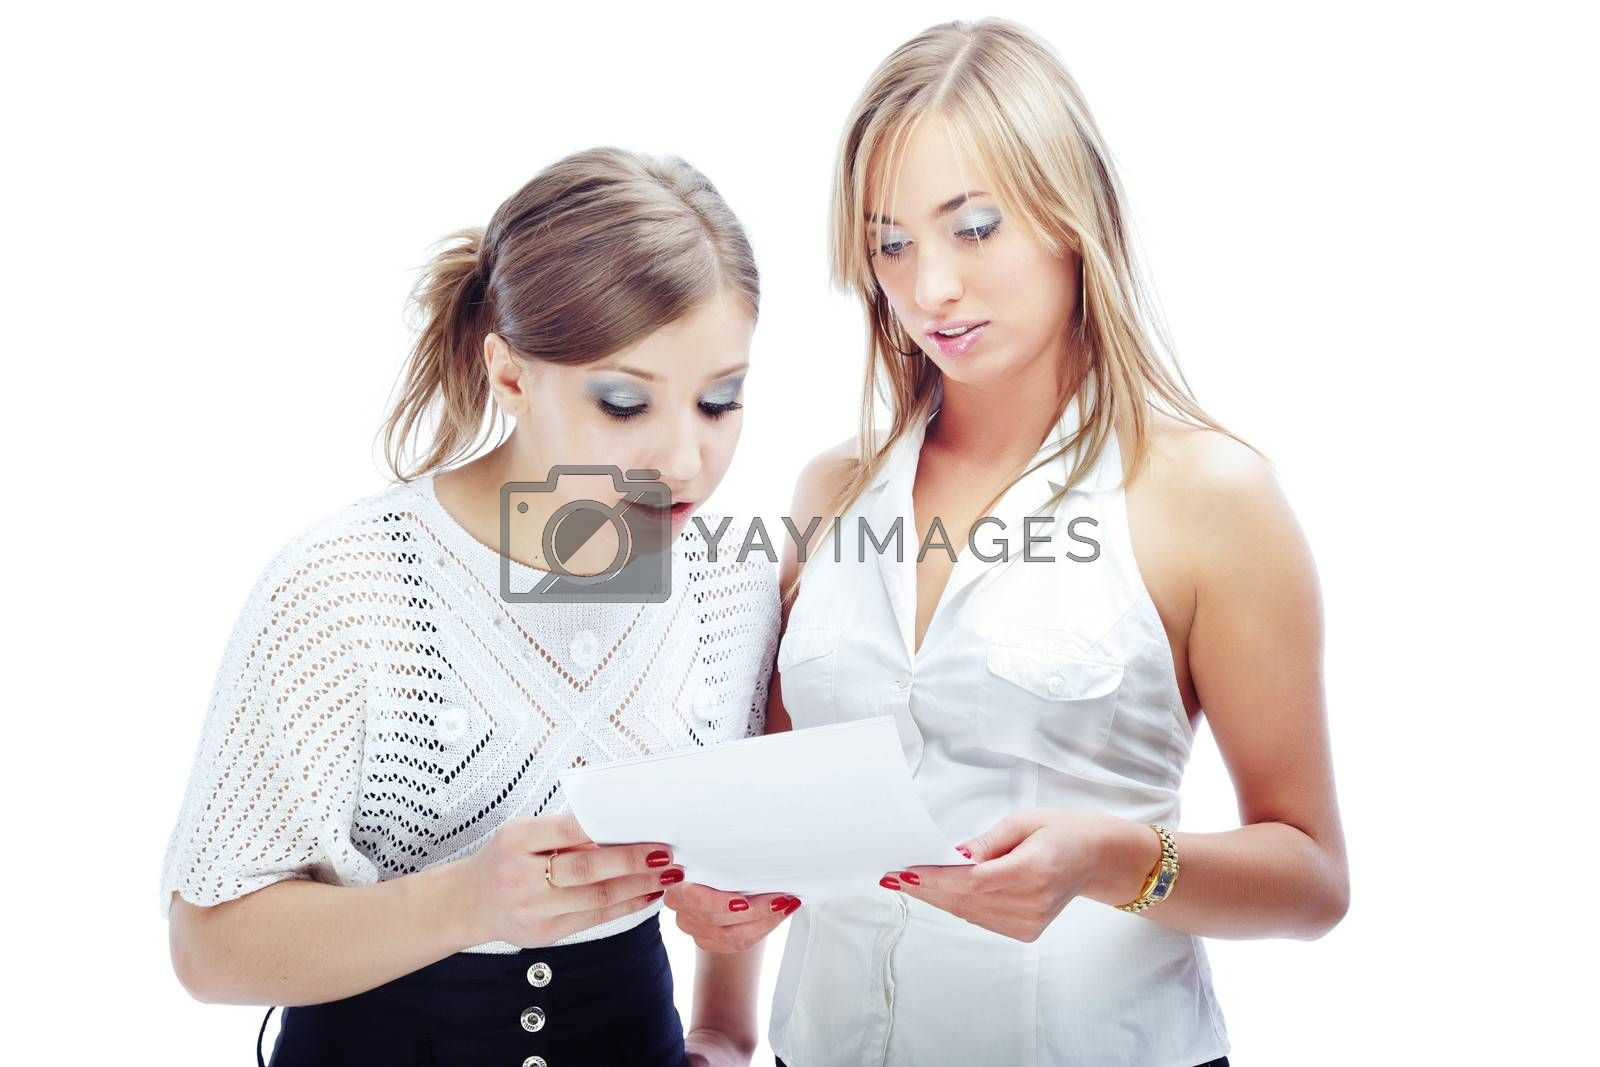 Two women reading the document